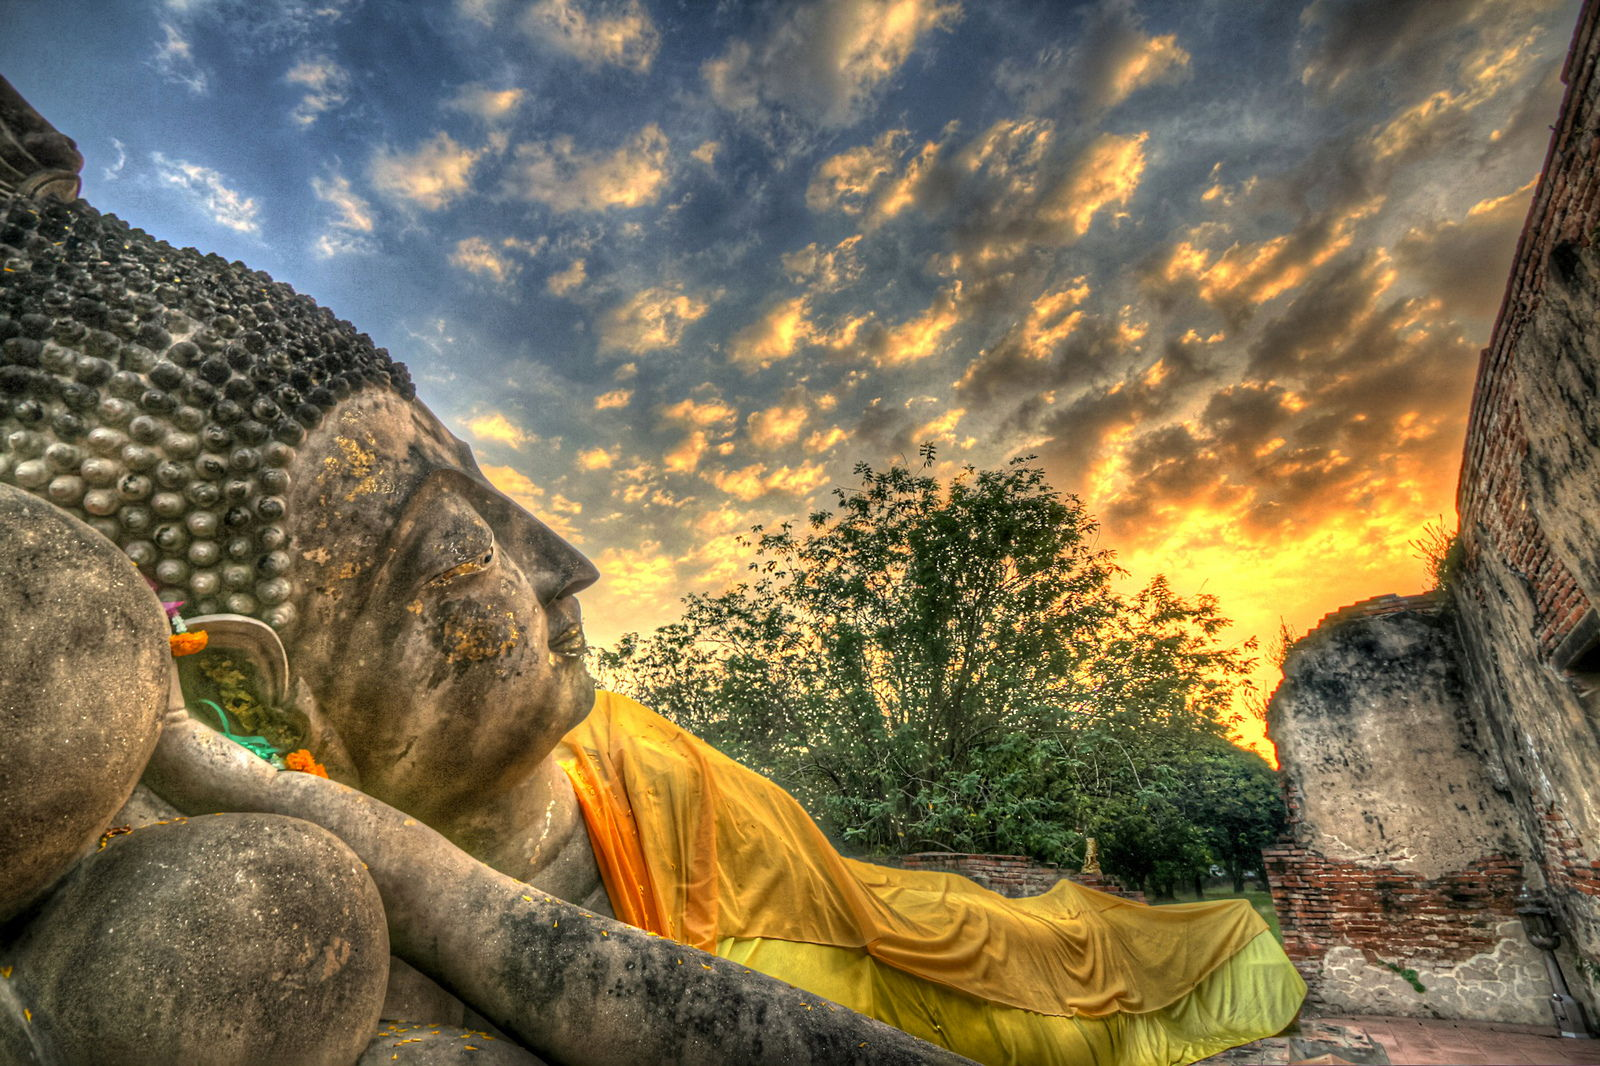 Reclining buddha at sunset.jpg